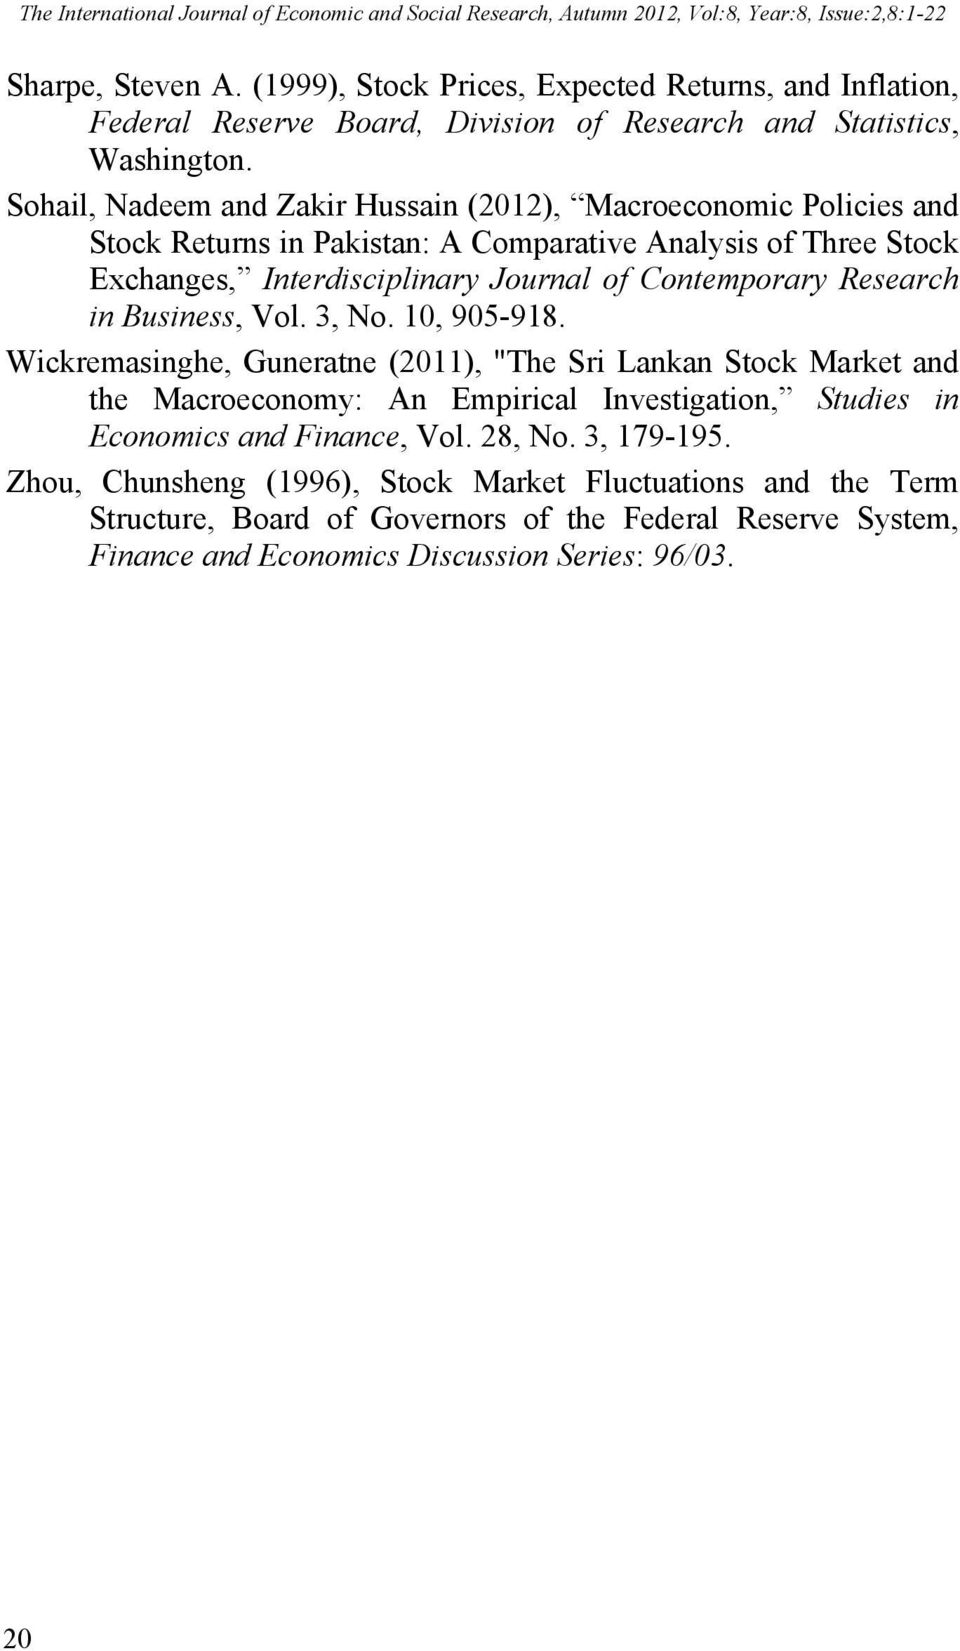 Sohail, Nadeem and Zakir Hussain (2012), Macroeconomic Policies and Stock Returns in Pakistan: A Comparative Analysis of Three Stock Exchanges, Interdisciplinary Journal of Contemporary Research in